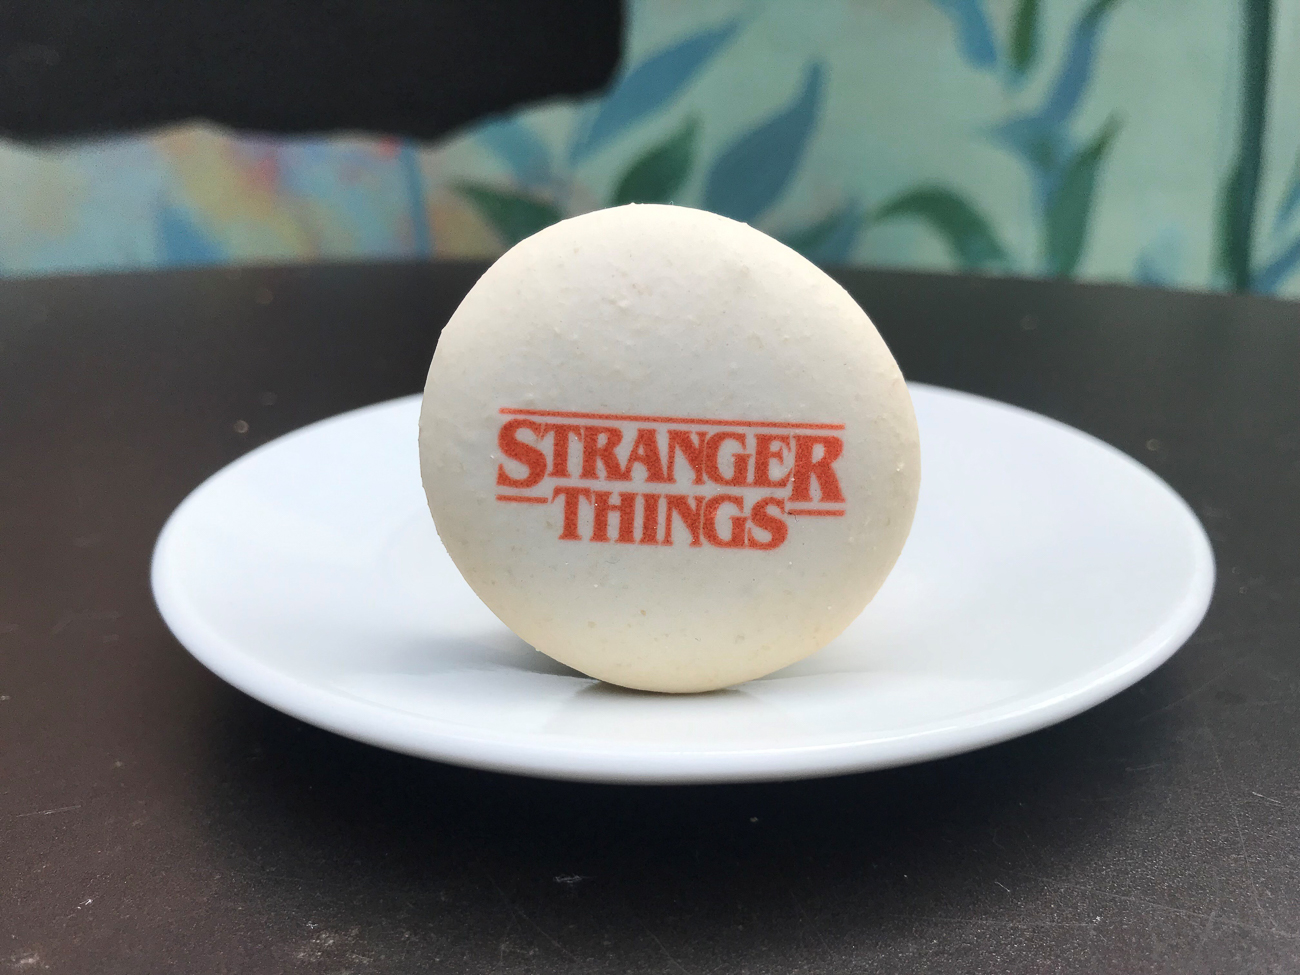 Macarons branded with Stranger Things logos and references? Sure, why not. Get the customized cookies from Gallery Pastry Shop before you watch all eight eps in that slick hotel room you rented. They're available July 1 through 7. ADDRESS: 1101 E 54th St G, Indianapolis, IN 46220 / Image courtesy of Visit Indy // Published: 6.26.19